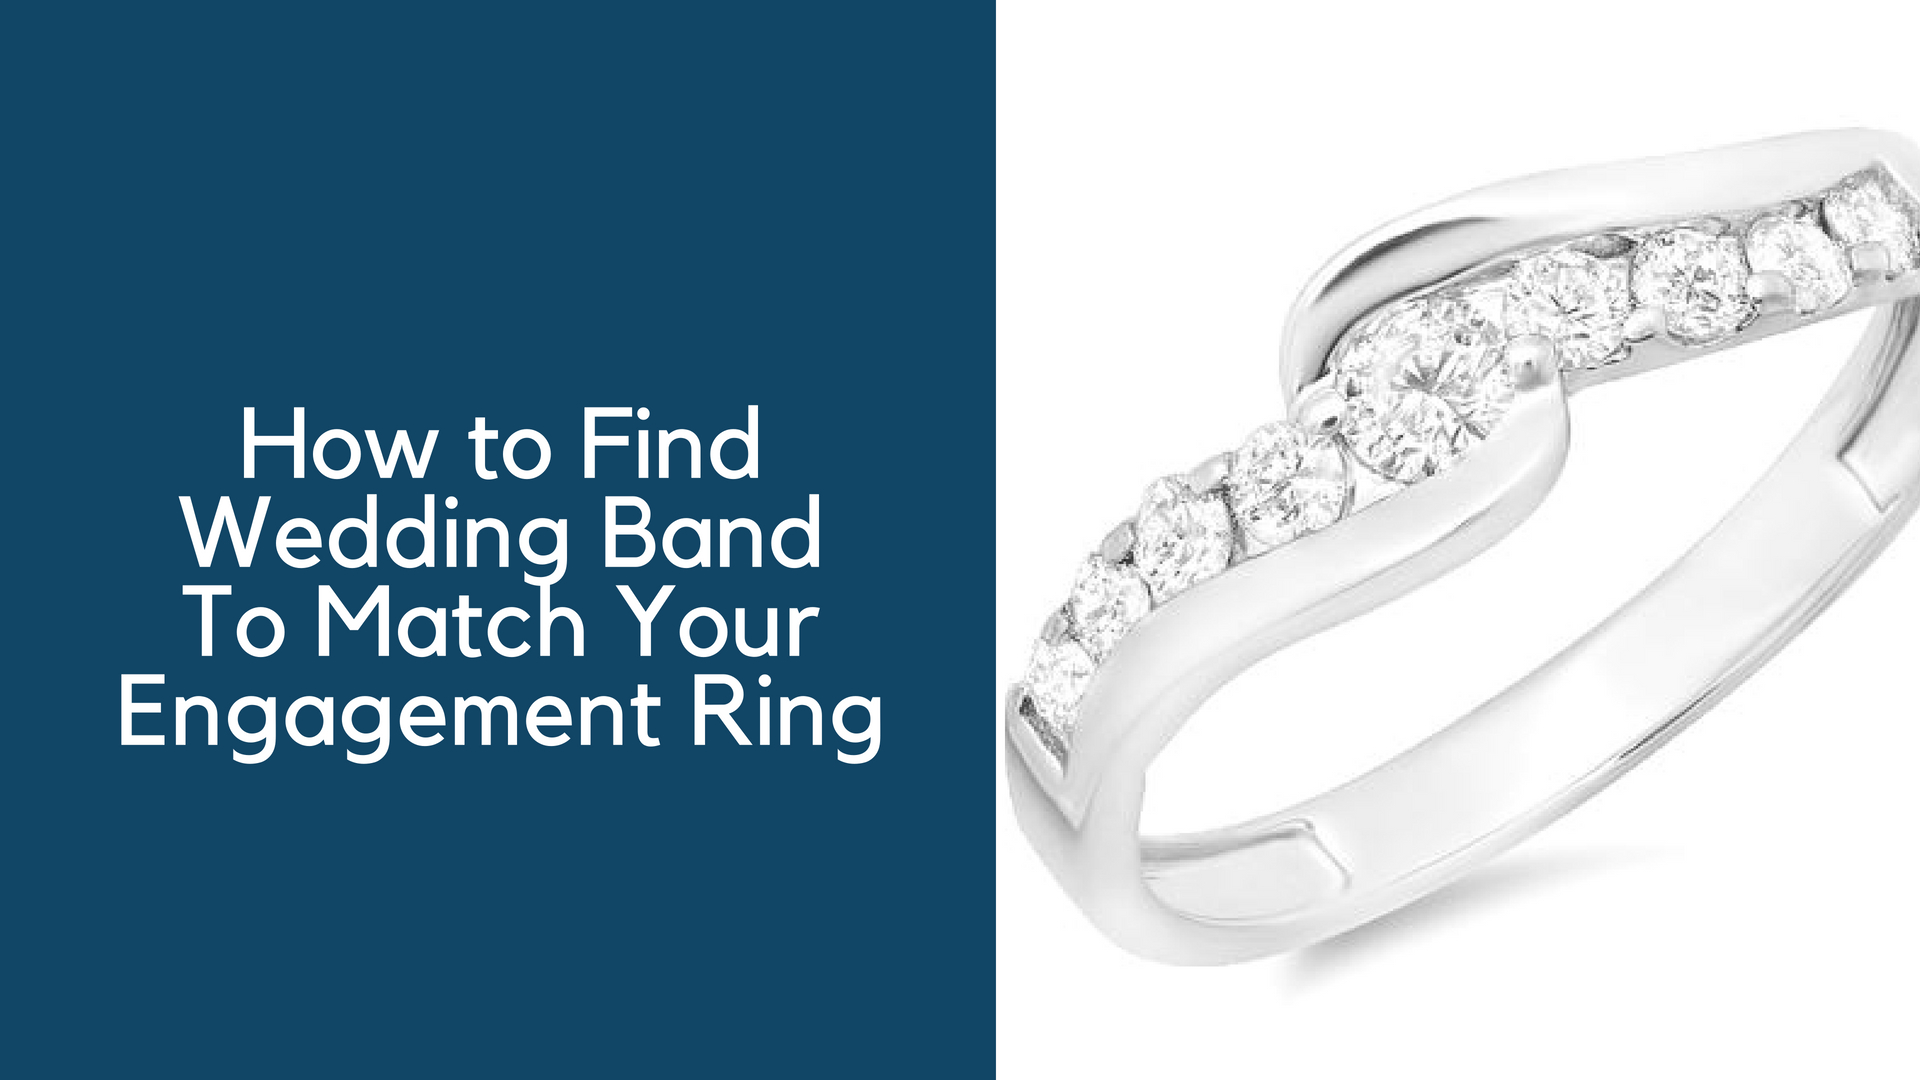 How to Find Wedding Band to Match Your Engagement Ring